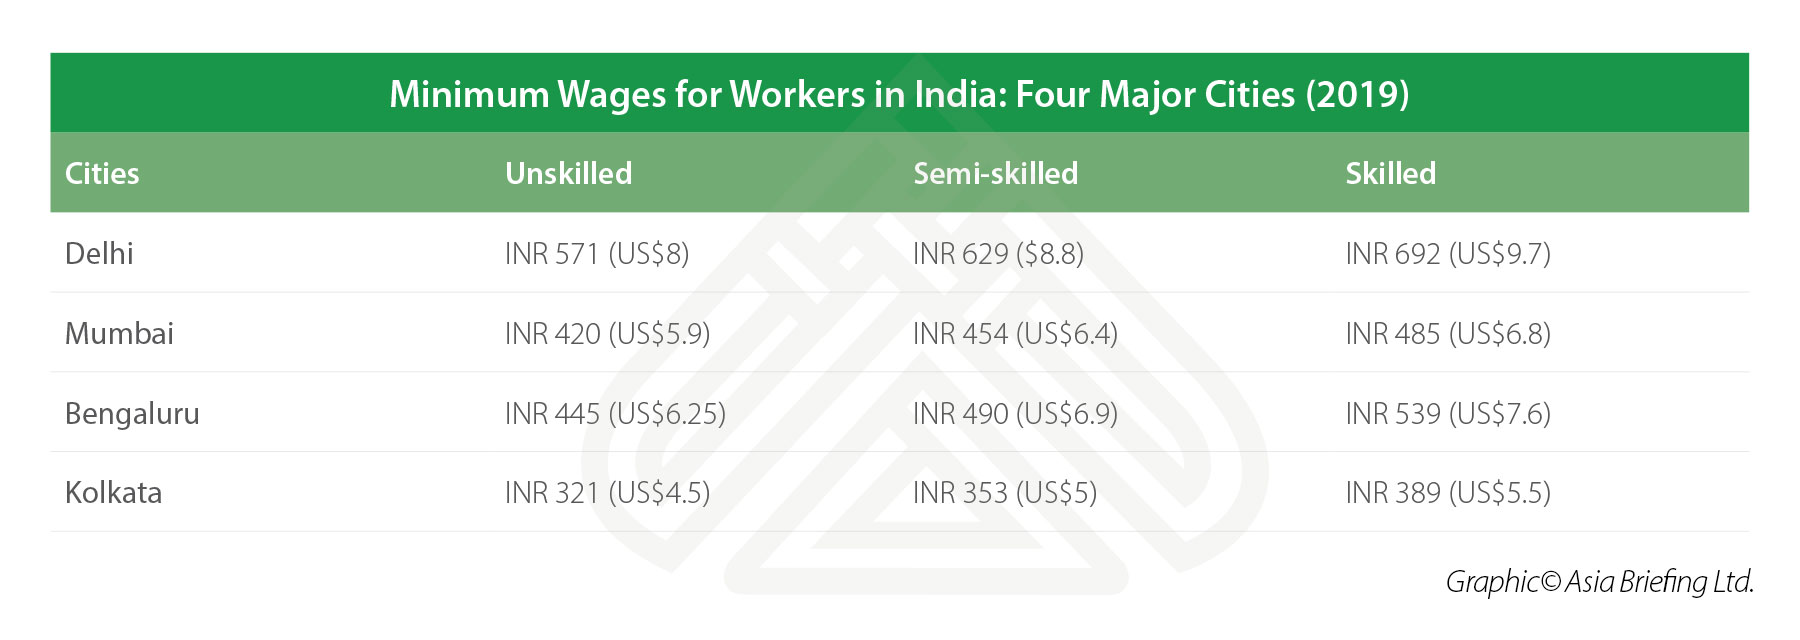 Minimum Wages for Workers in India: Four Major Cities (2019)